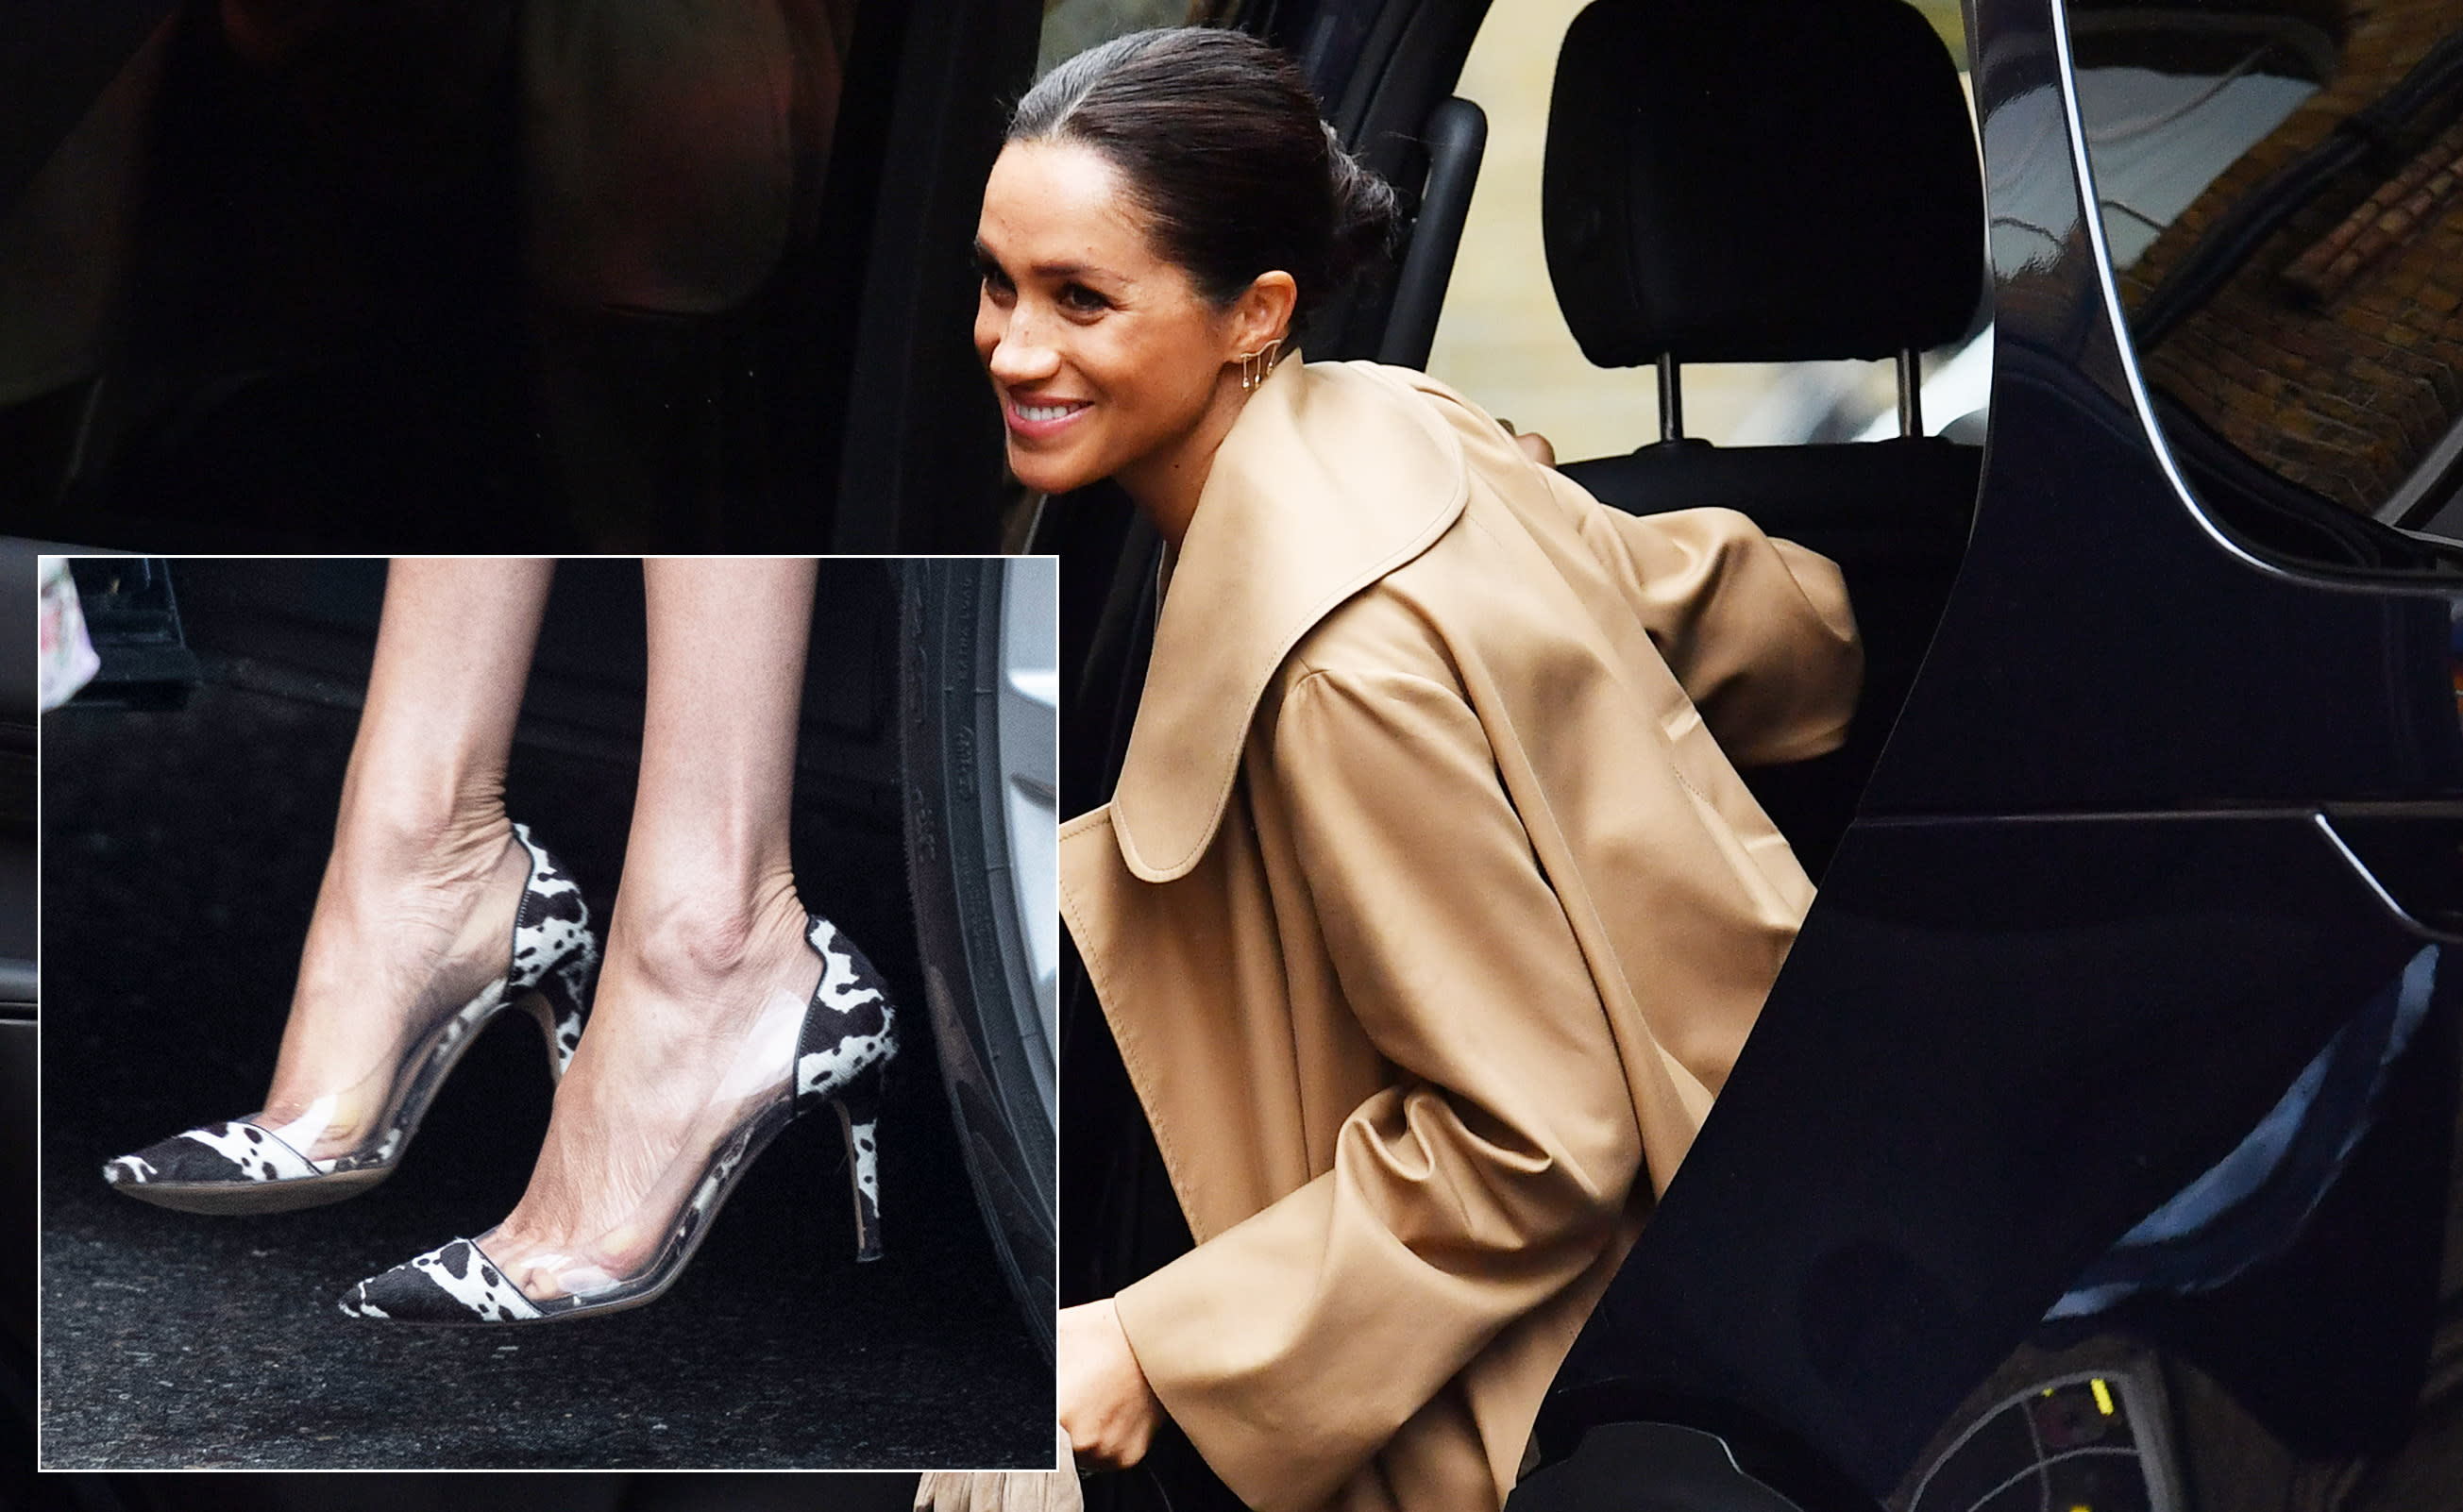 e2cd8784c9a First spotted in an Instagram photo of her shoe collection that the Duchess  uploaded back in her social media